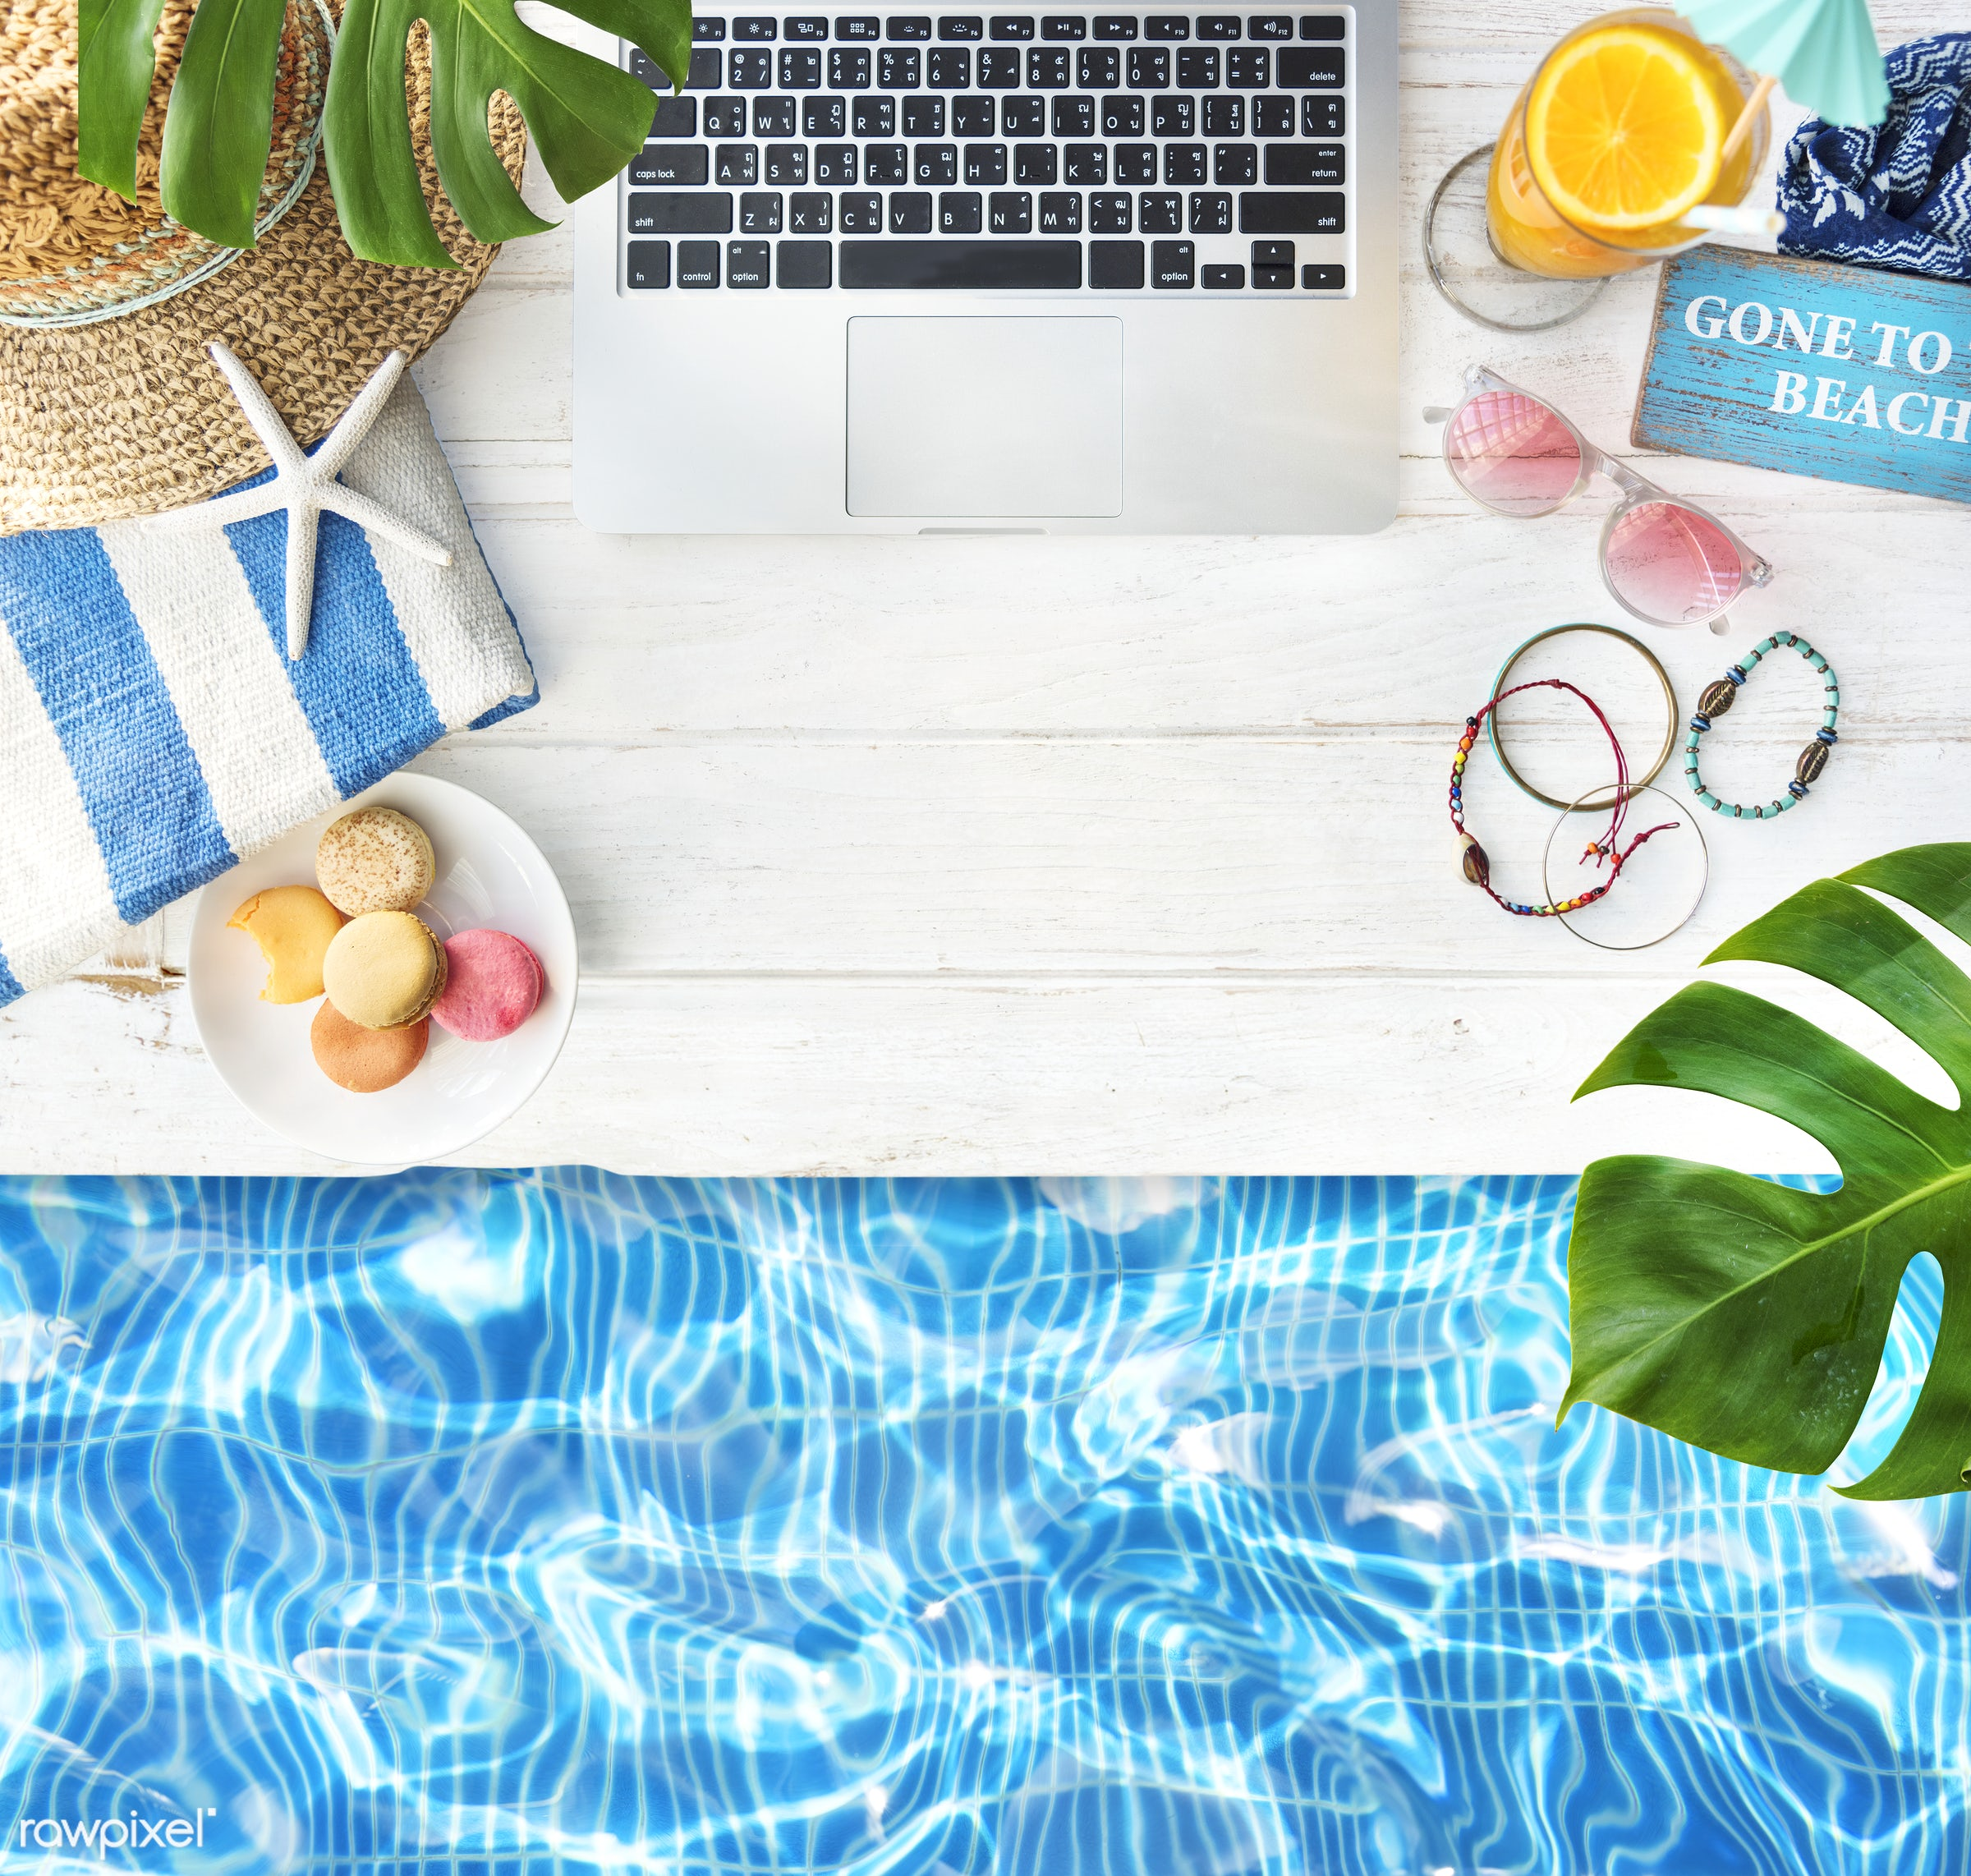 summer, vacation, computer, beach, desk, pool, nature, laptop, hat, flat lay, aerial, browsing, device, digital, drink,...